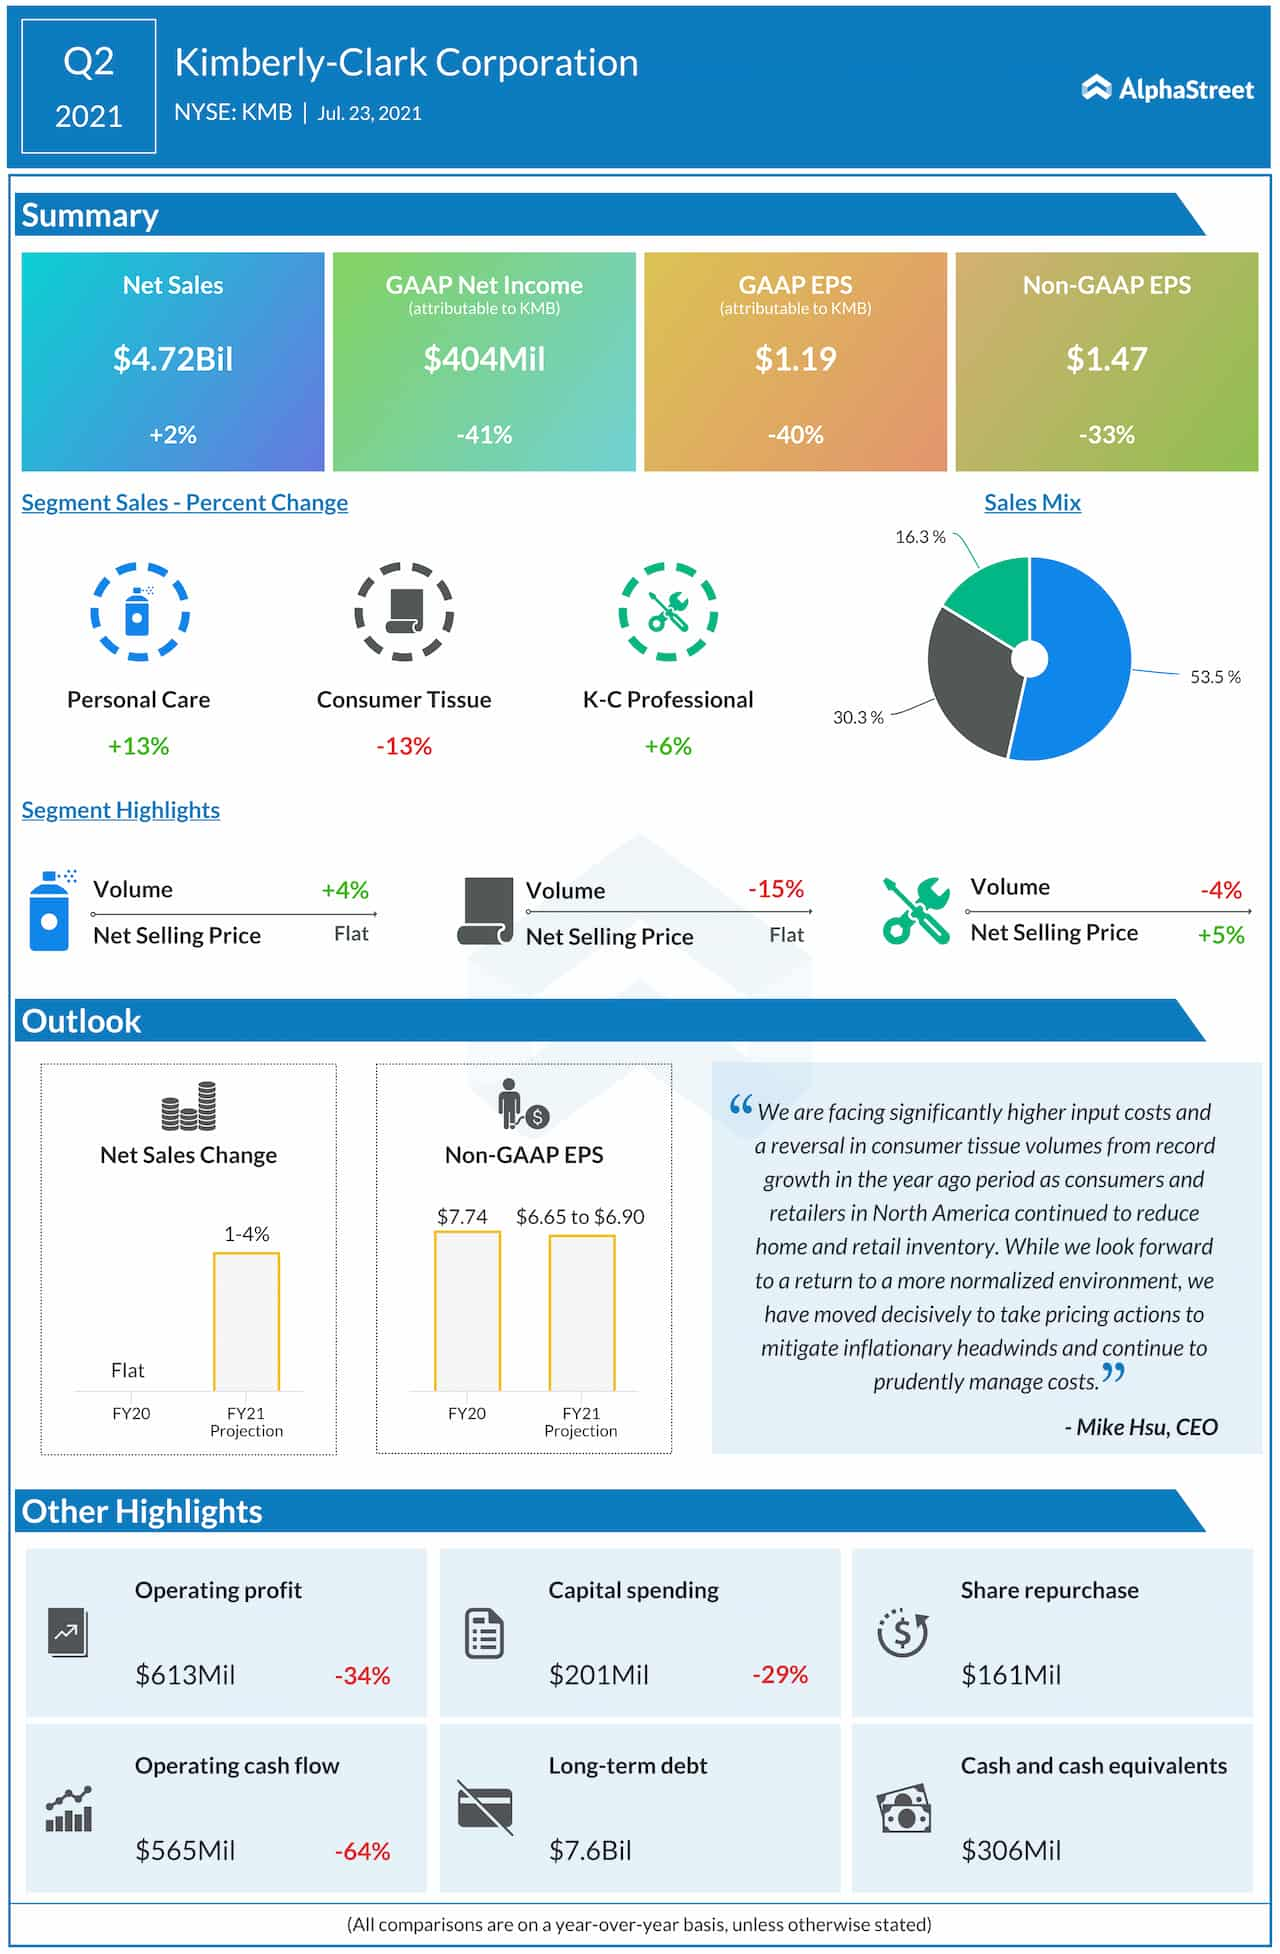 Kimberly-Clark Corp. Q2 2021 earnings infographic